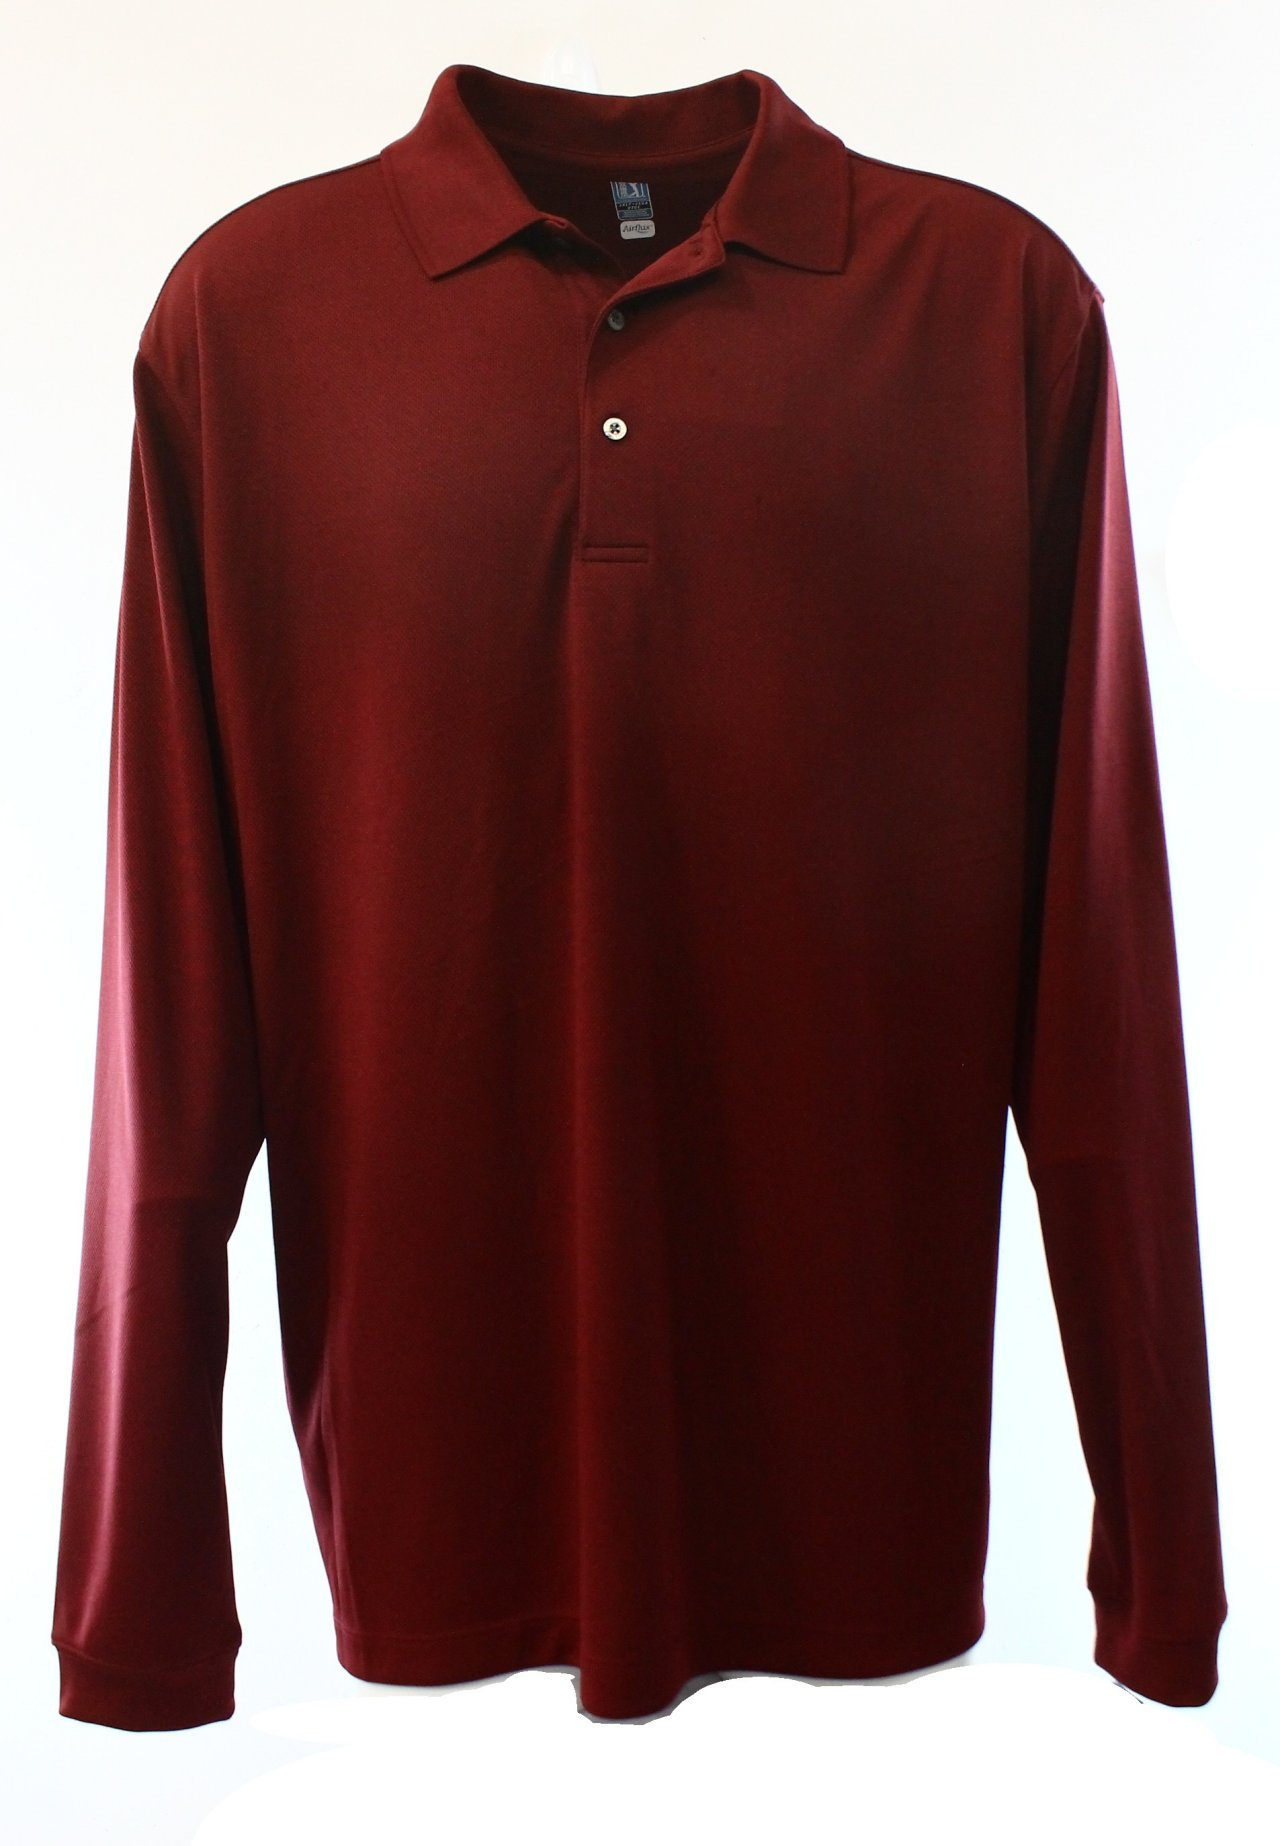 Pga Tour New Zinfandel Red Mens Us Size 2xlt Long Sleeve